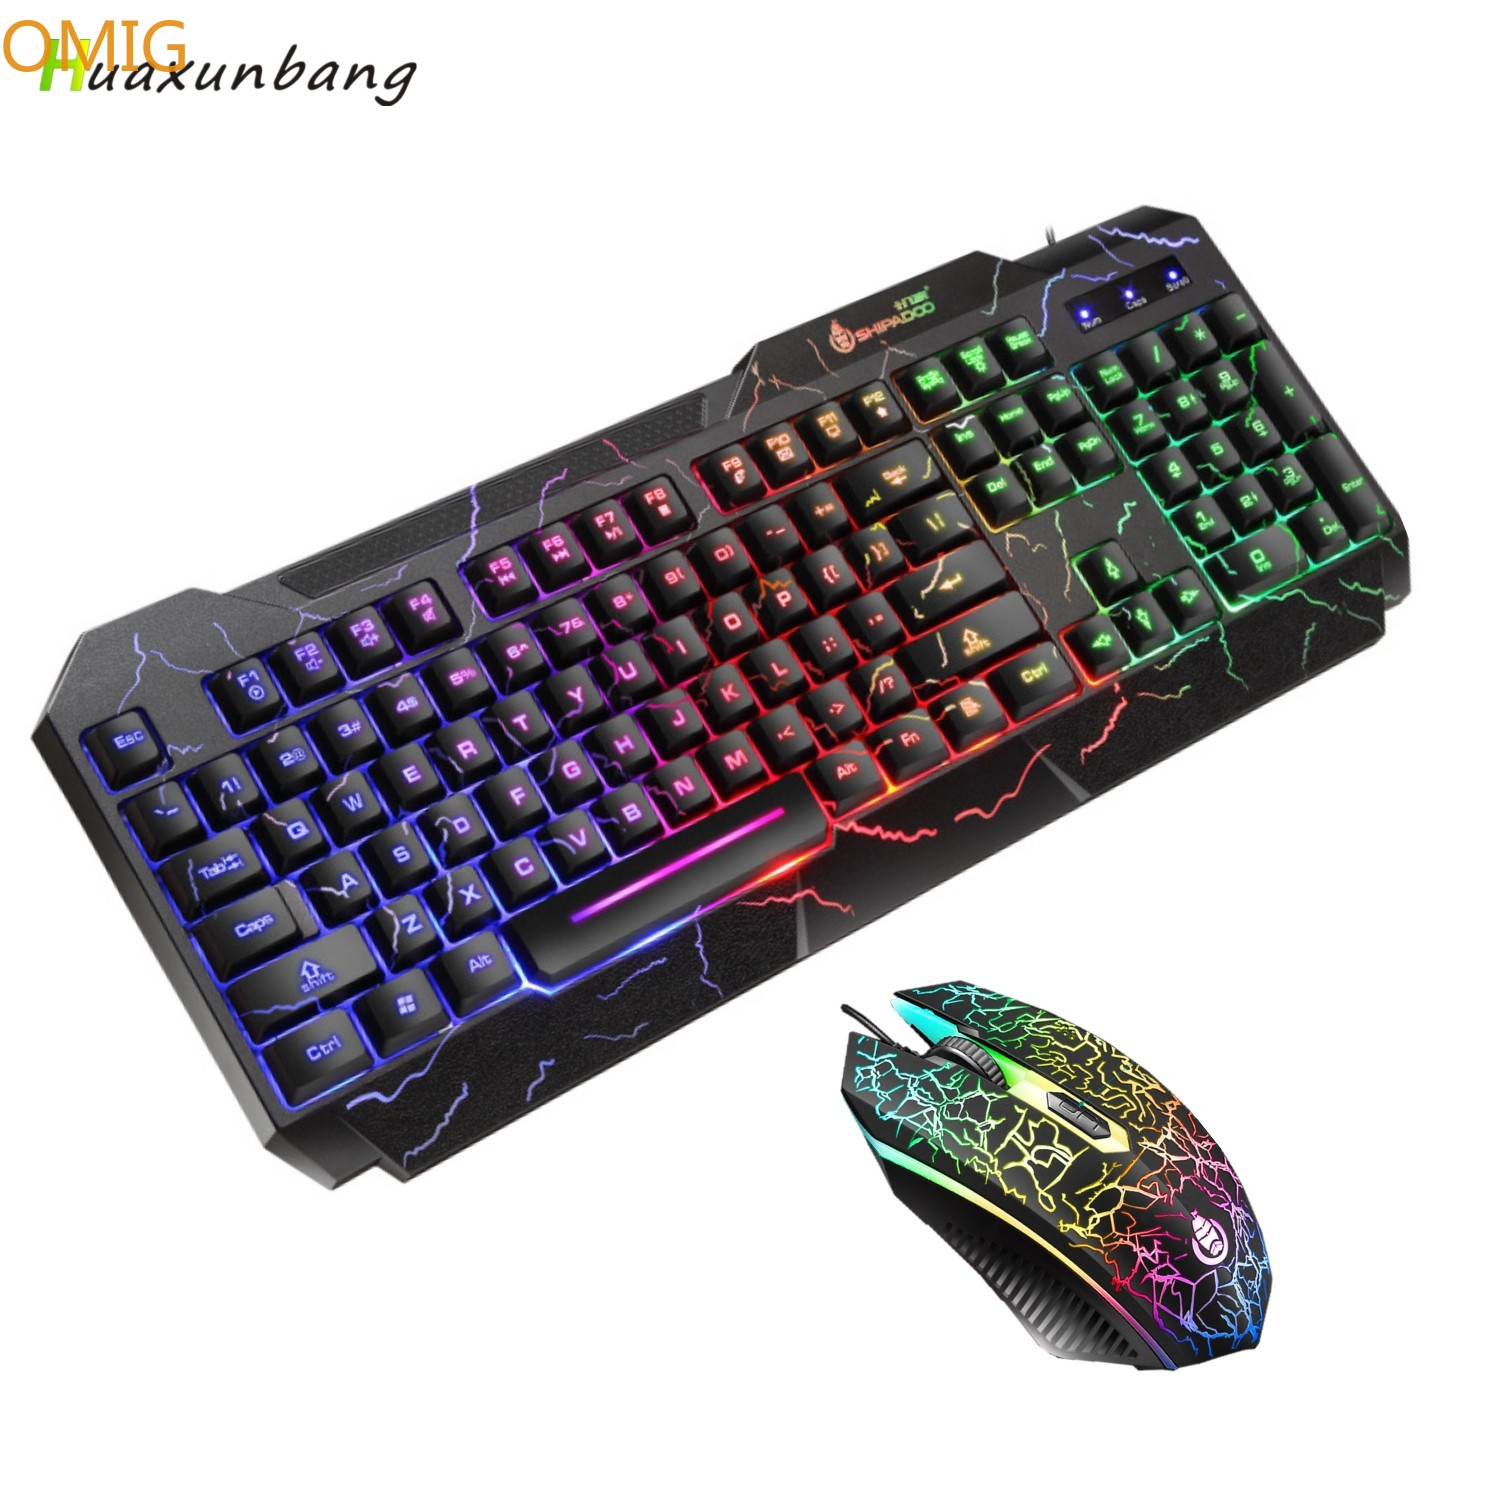 Gaming Keyboard Mouse Combo USB Wired Luminous Keybord Gamer Kit Waterproof MultiMedia LED Backlit Keyboard And Mouse Set For PC